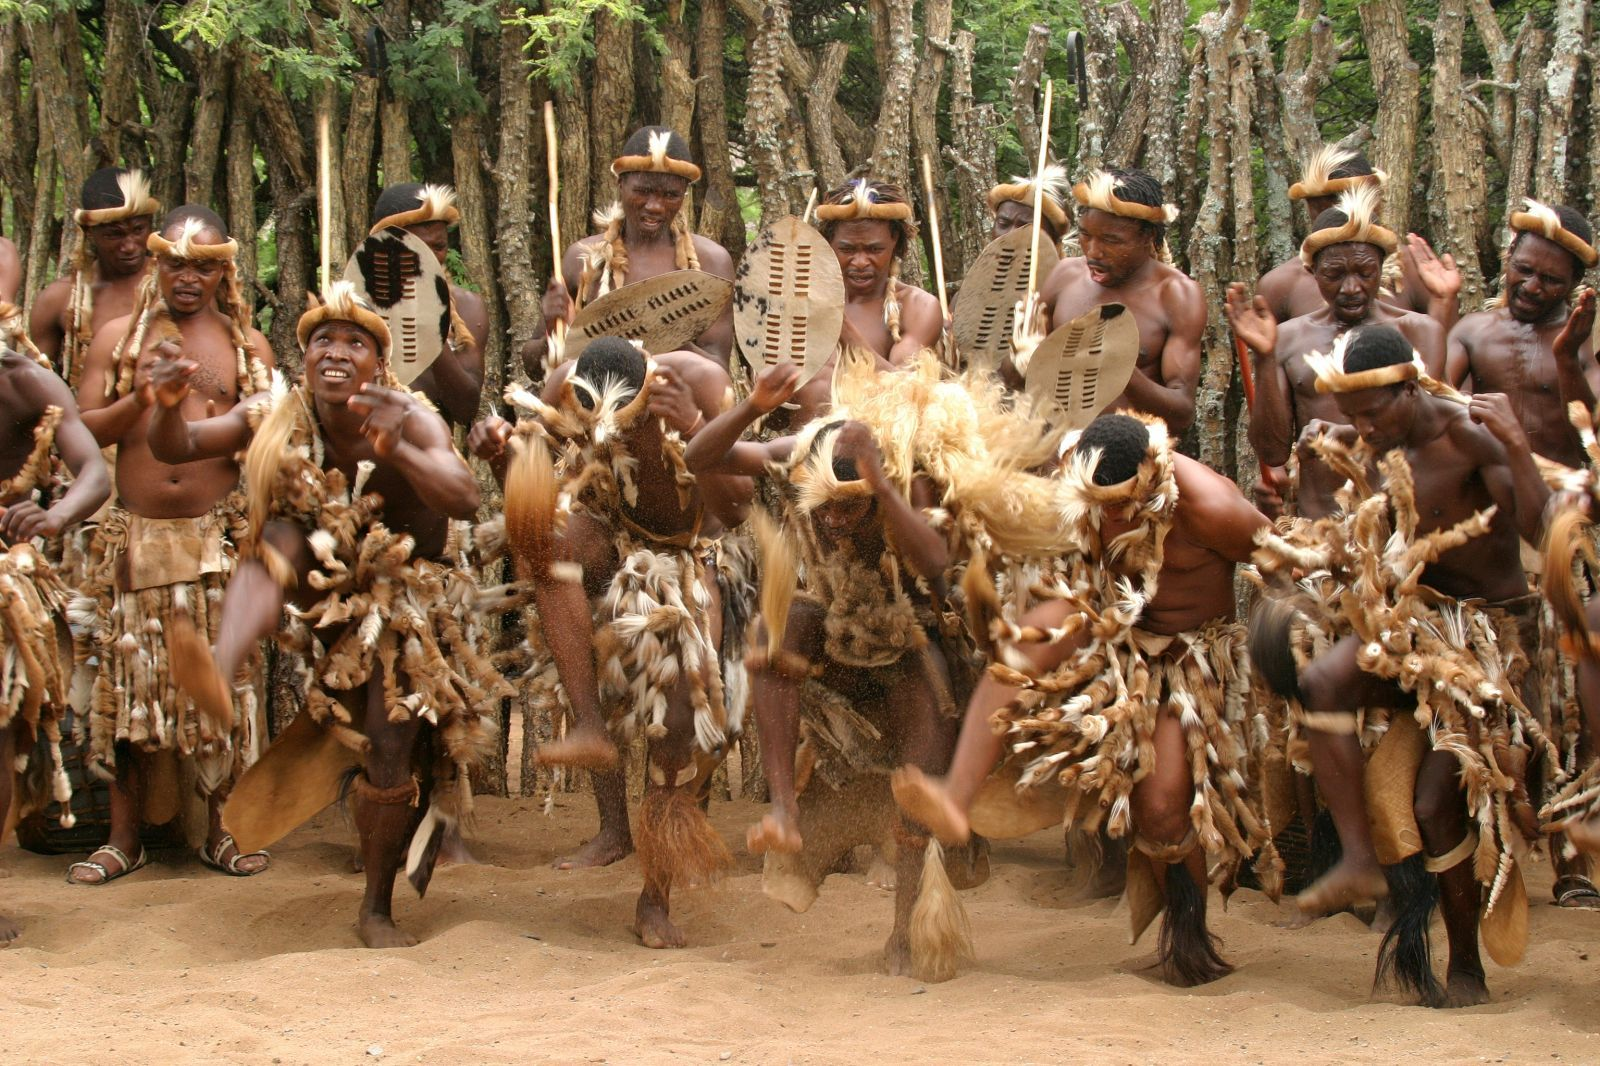 Historical Evolution Of South-African Zulu Tribe's Culture And Traditions